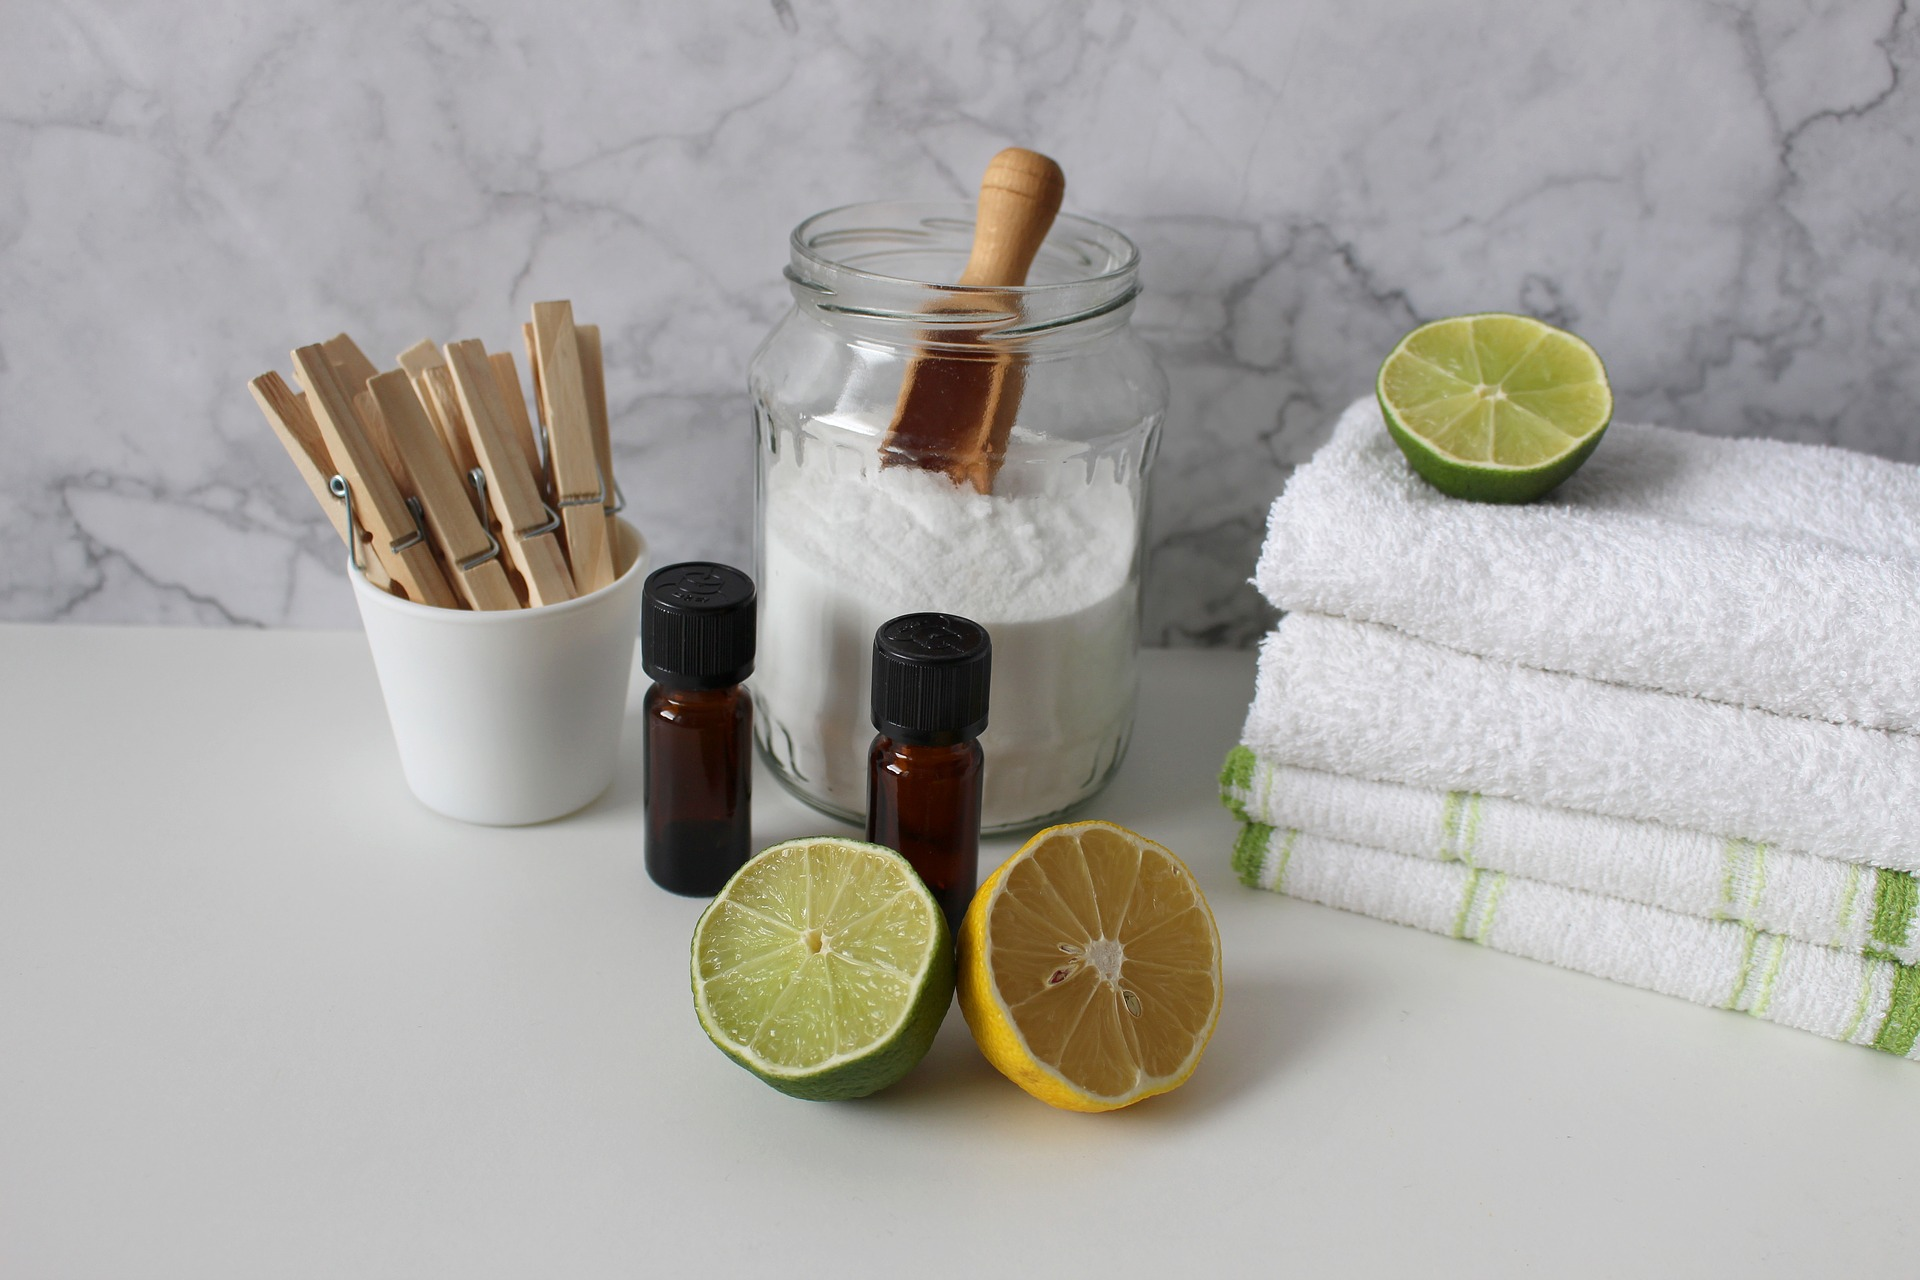 cleaning products, lemon, lime, bicarb and towels